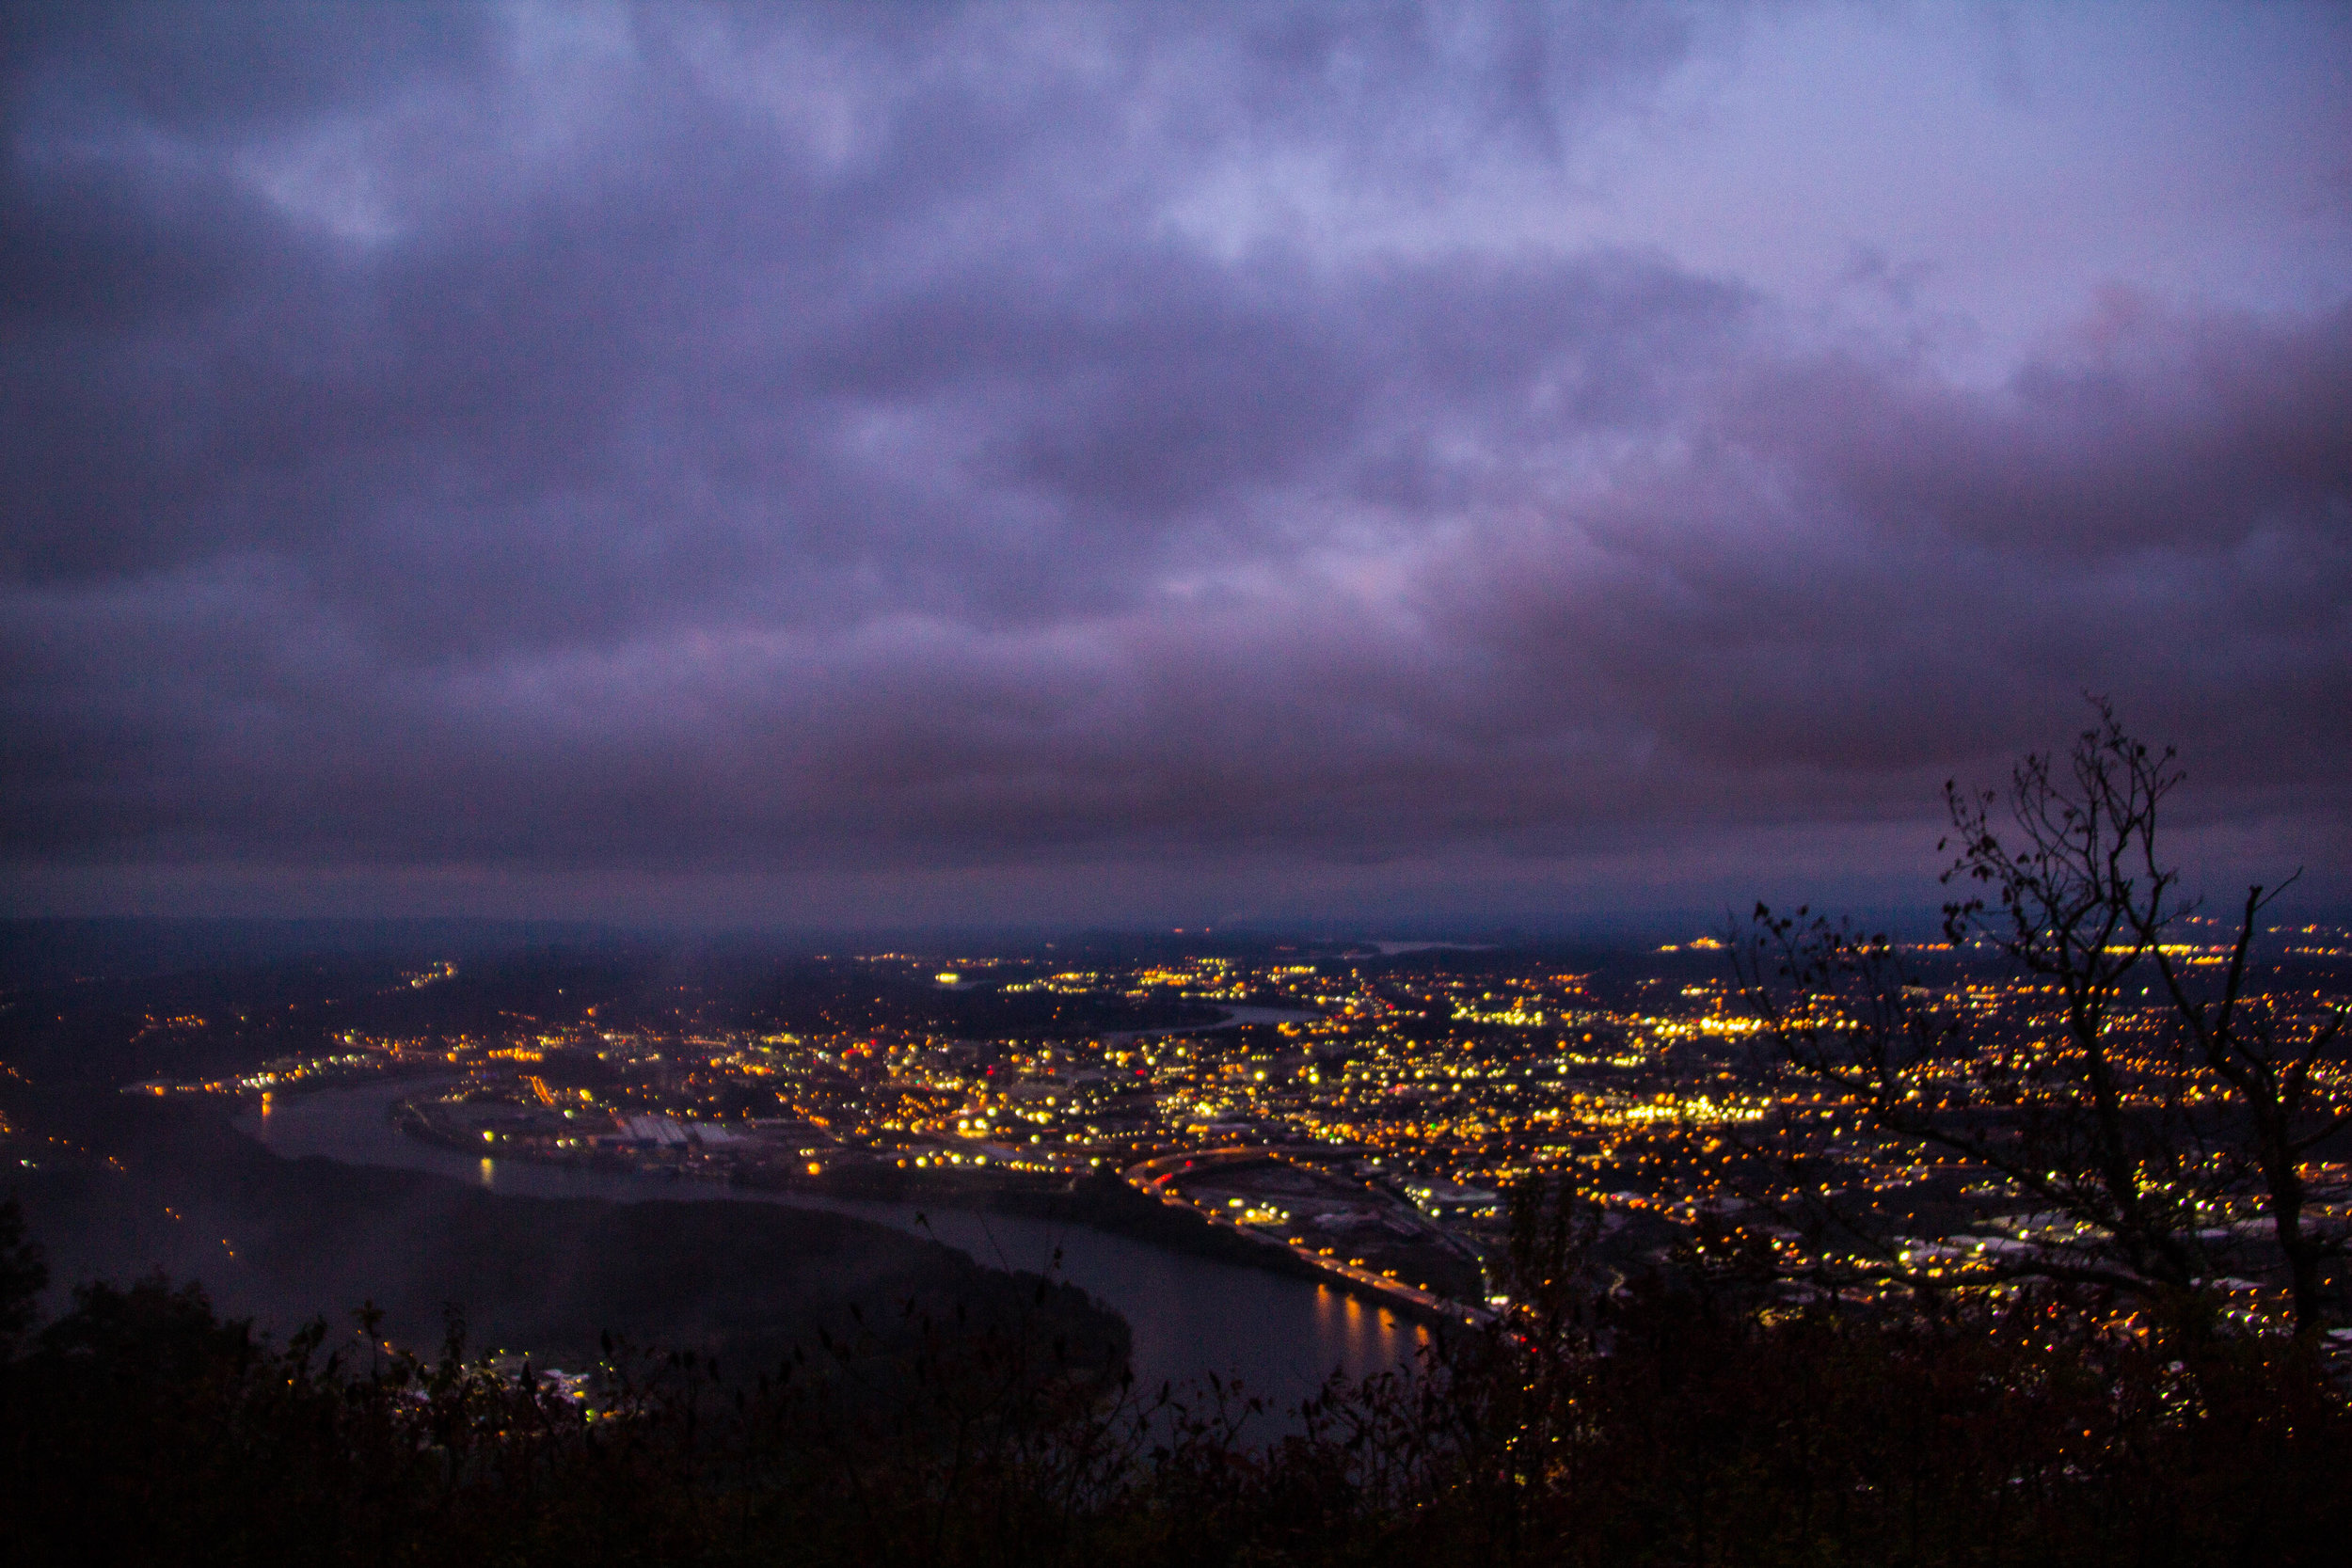 point-park-lookout-mountain-chattanooga-at-night-13.jpg